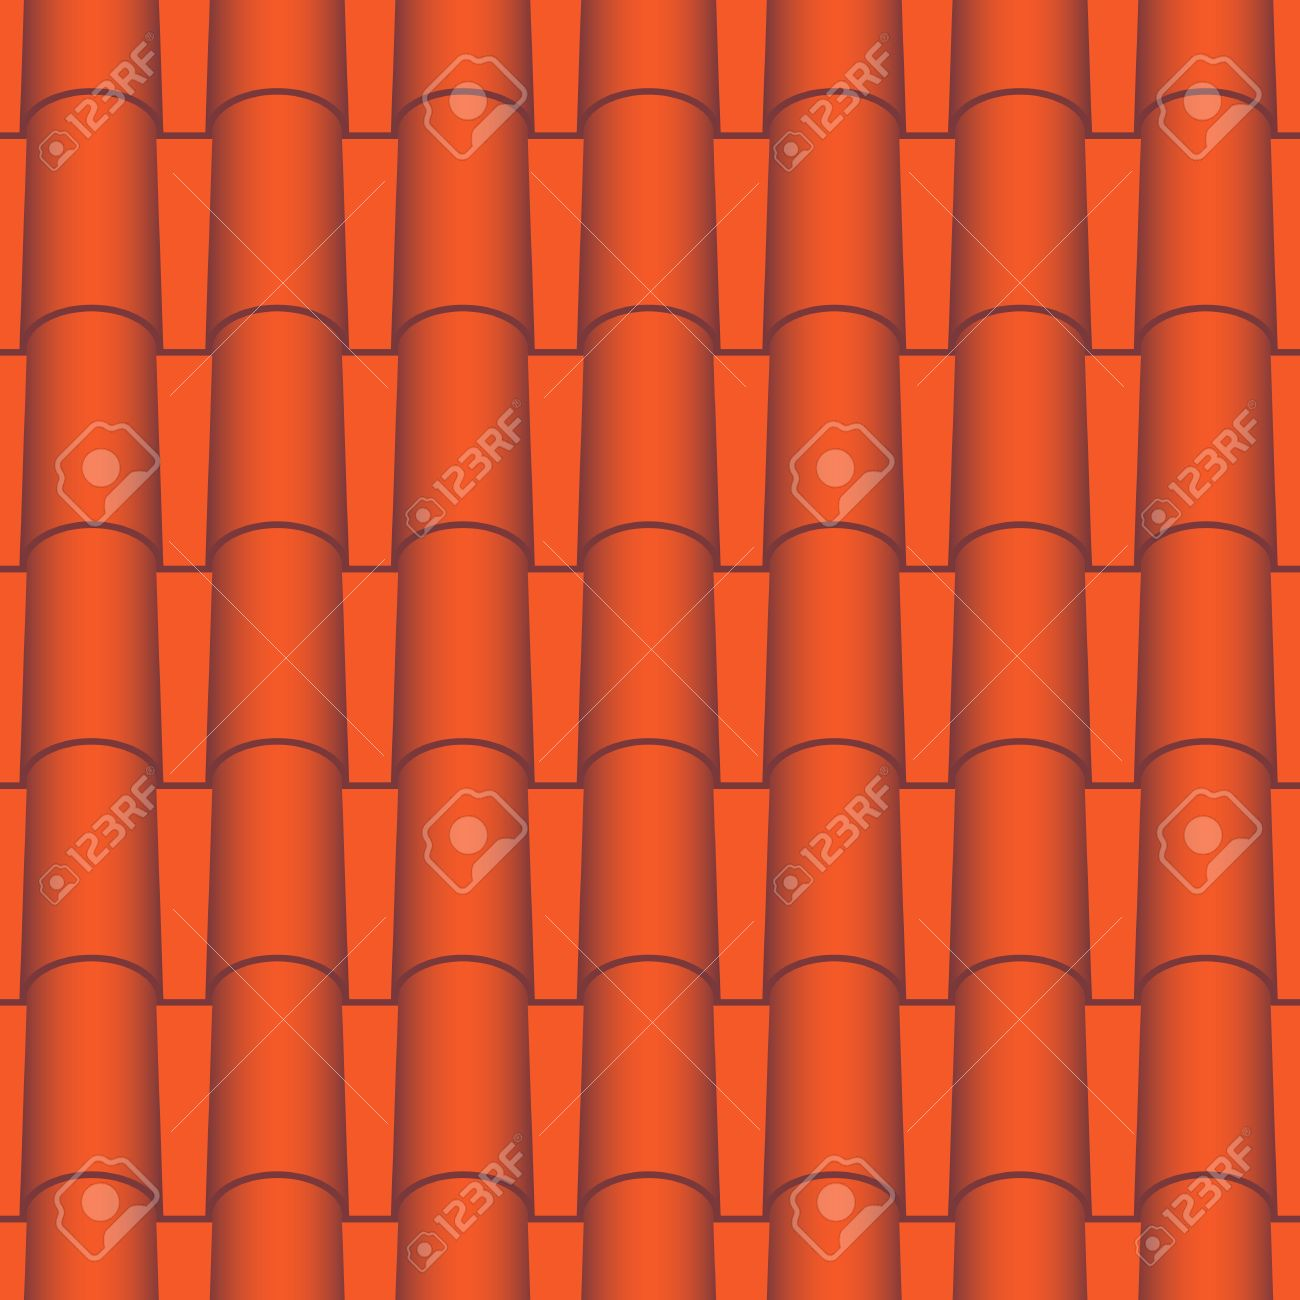 Red roof tiles seamless Vector texture Stock Vector - 18393100  sc 1 st  123RF Stock Photos & Red Roof Tiles Seamless Vector Texture Royalty Free Cliparts ... memphite.com